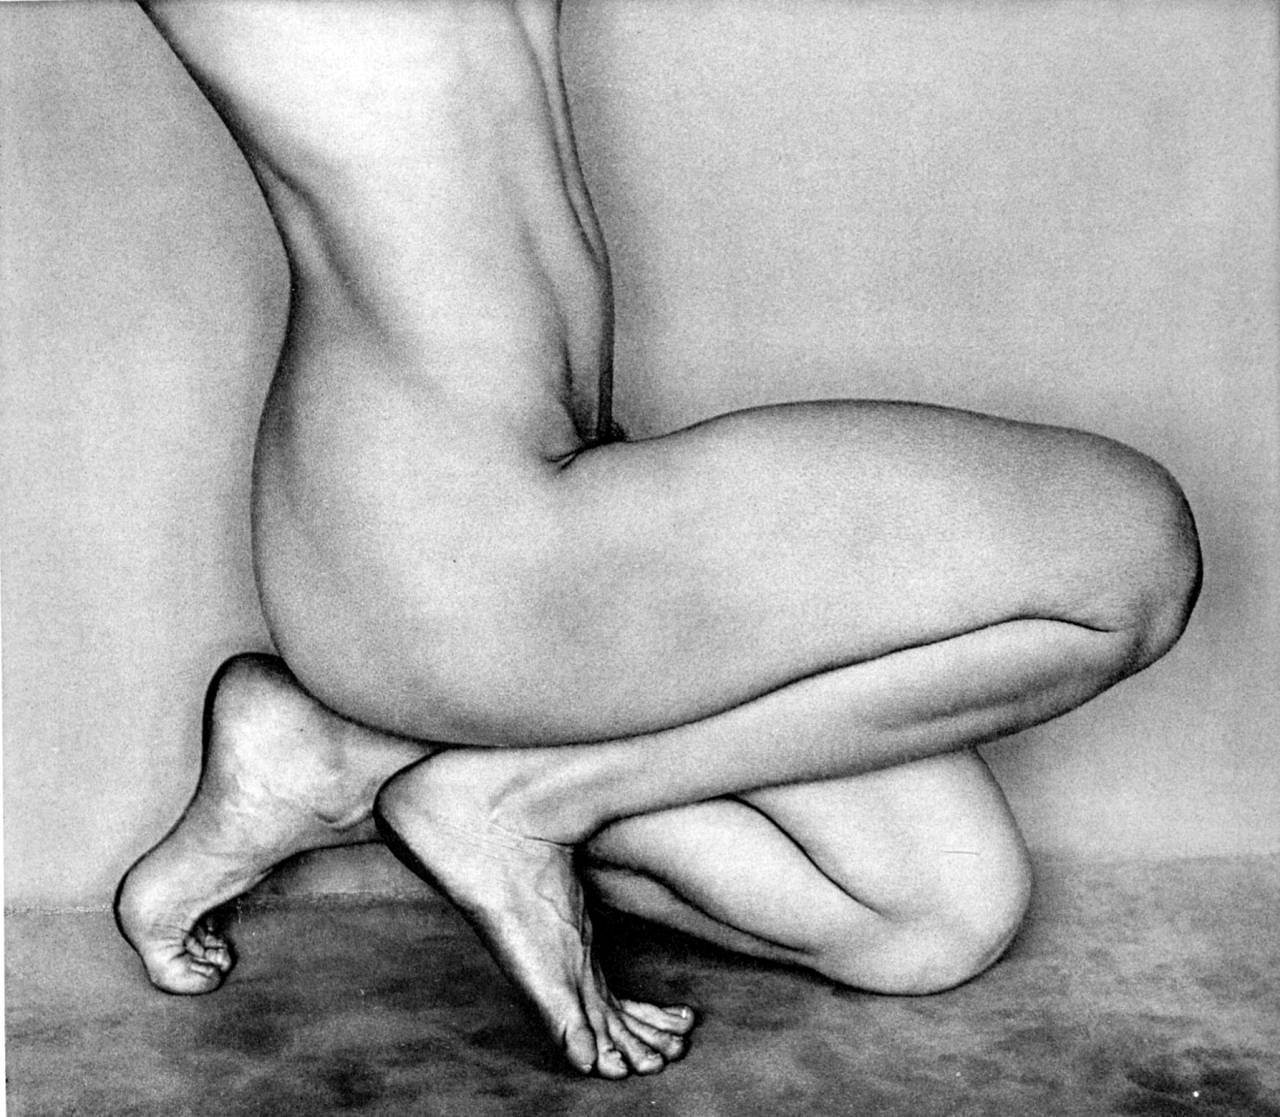 Edward Weston, Nude (1927)